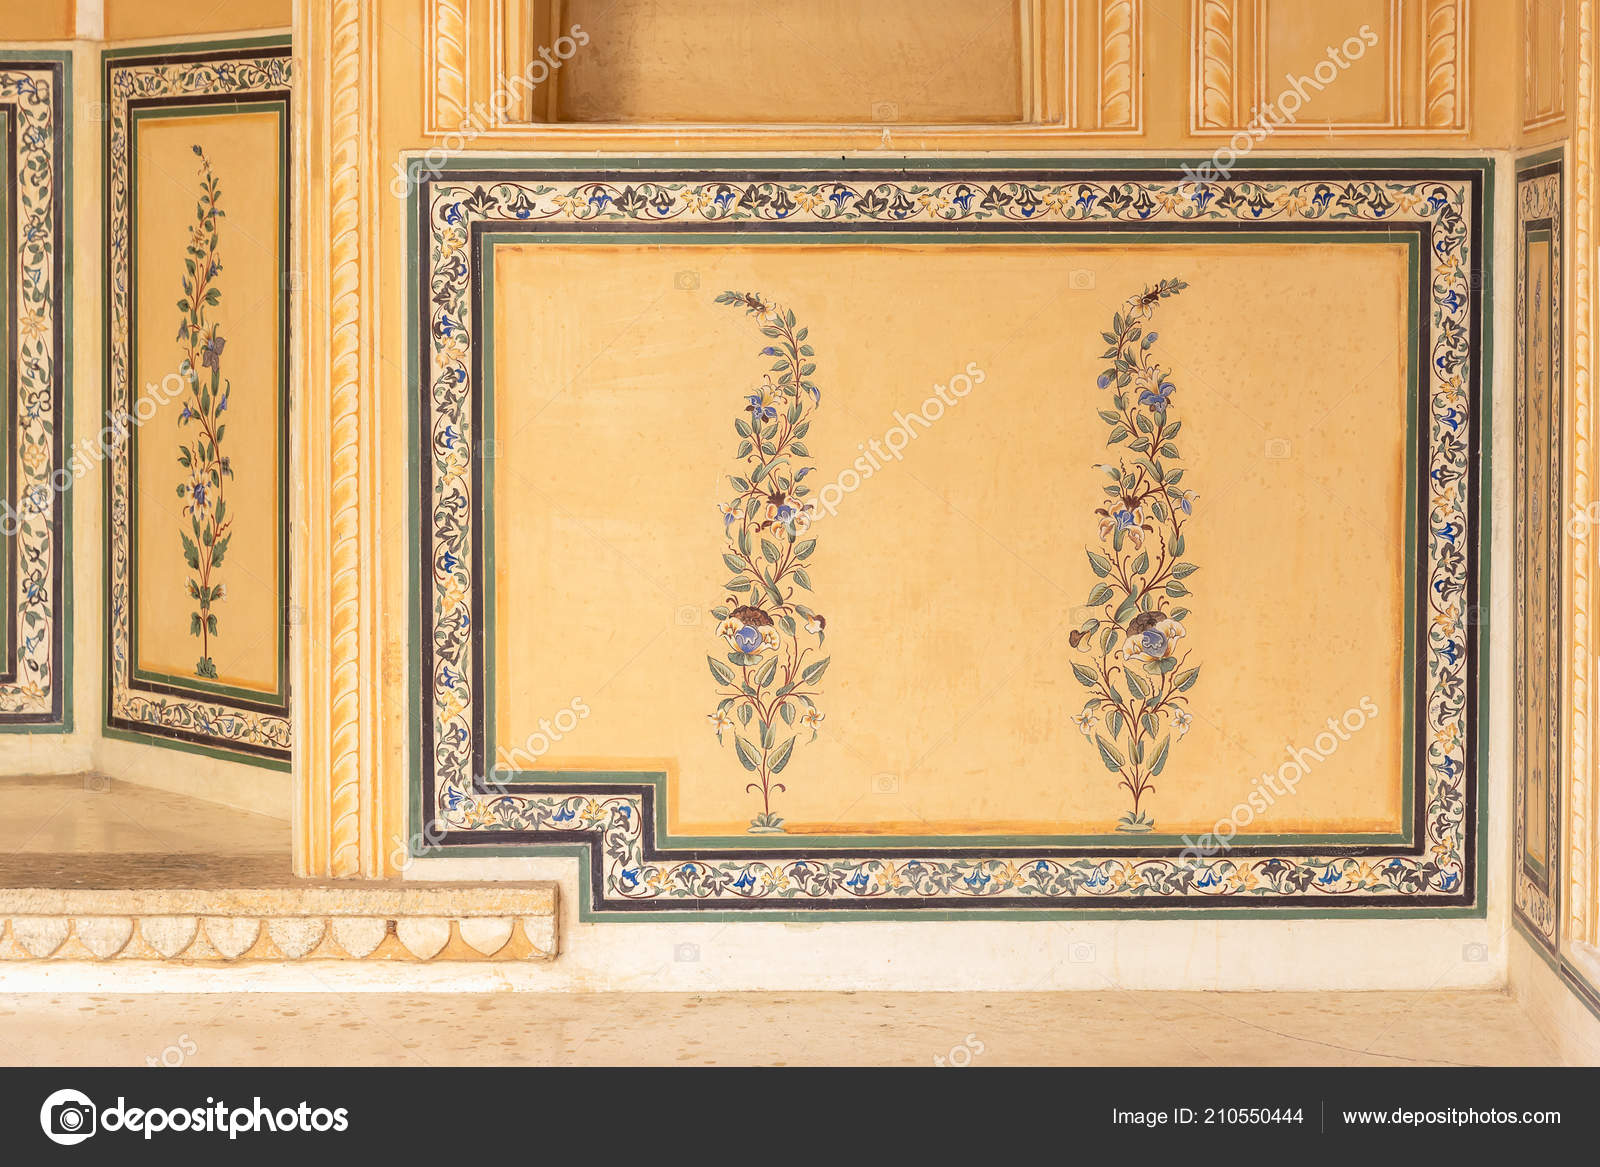 Floral Wall Painting Nahargarh Fort Jaipur Rajasthan India Stock